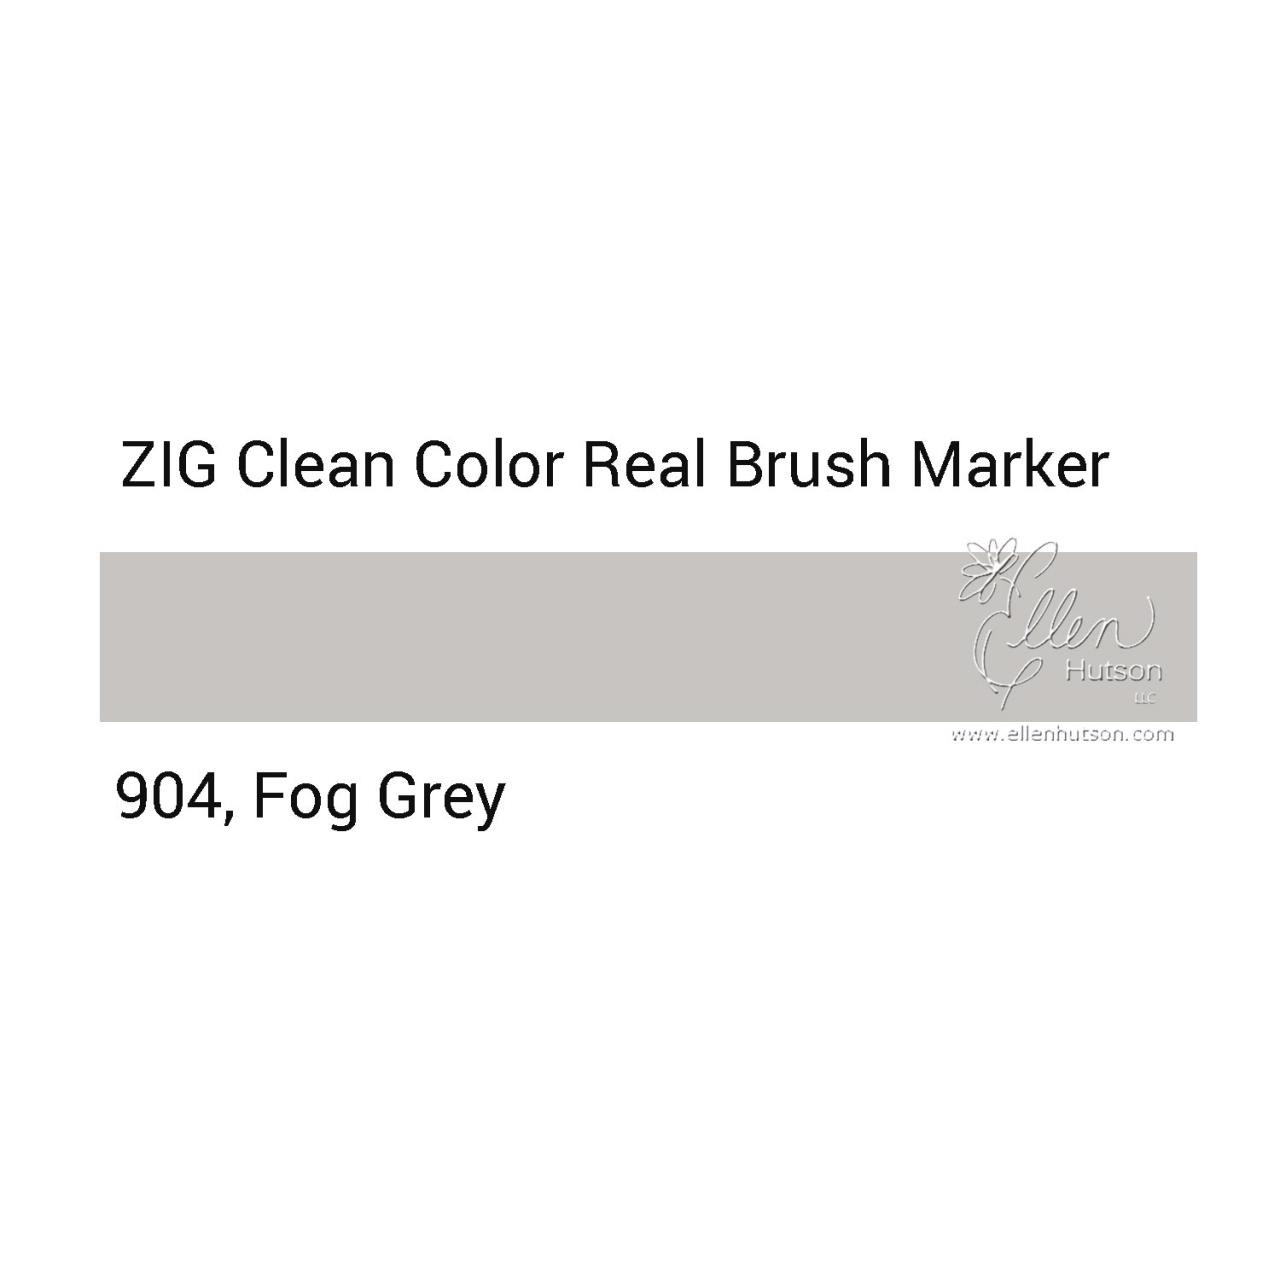 904 - Fog Gray, ZIG Clean Color Real Brush Marker - 847340037149